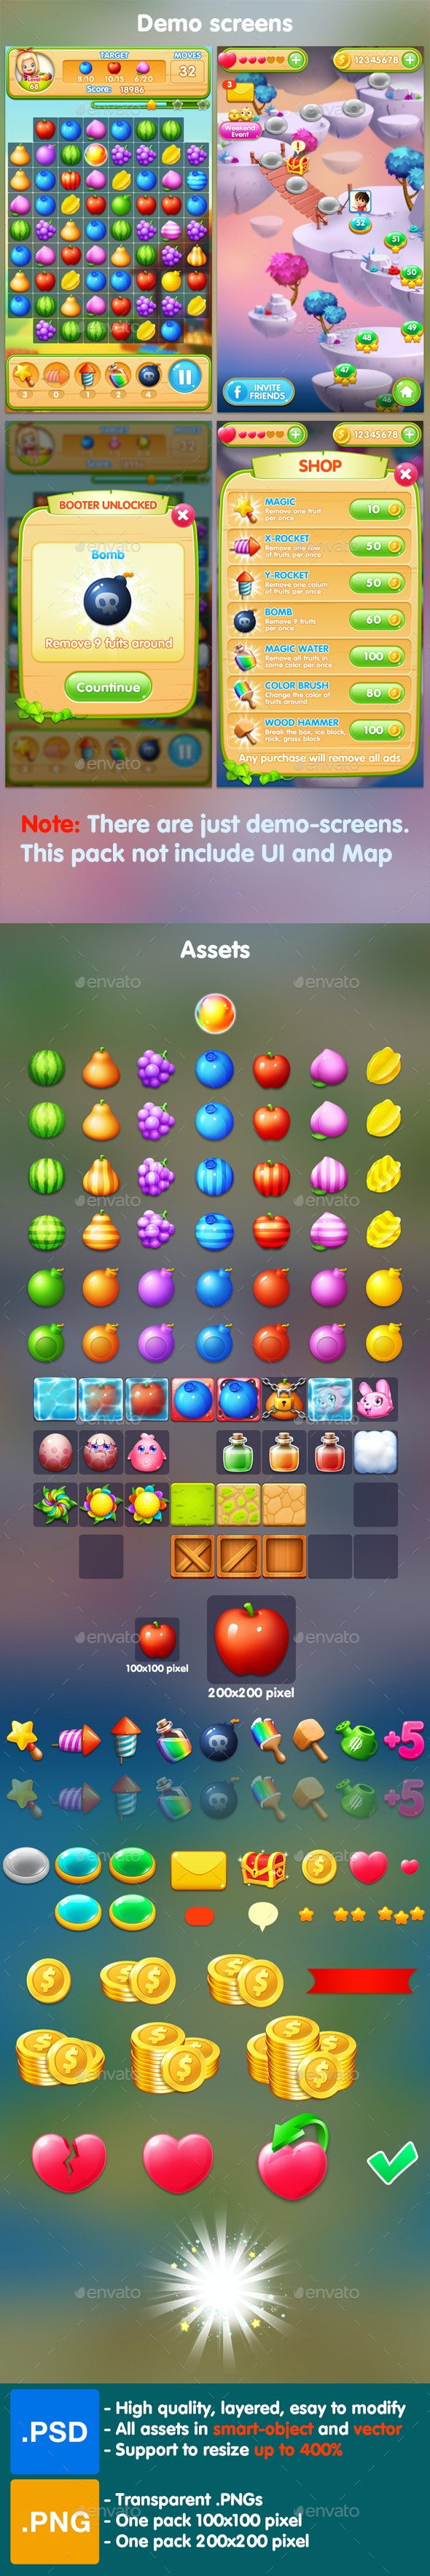 Fruits - Match 3 Game Assets - Game Kits Game Assets